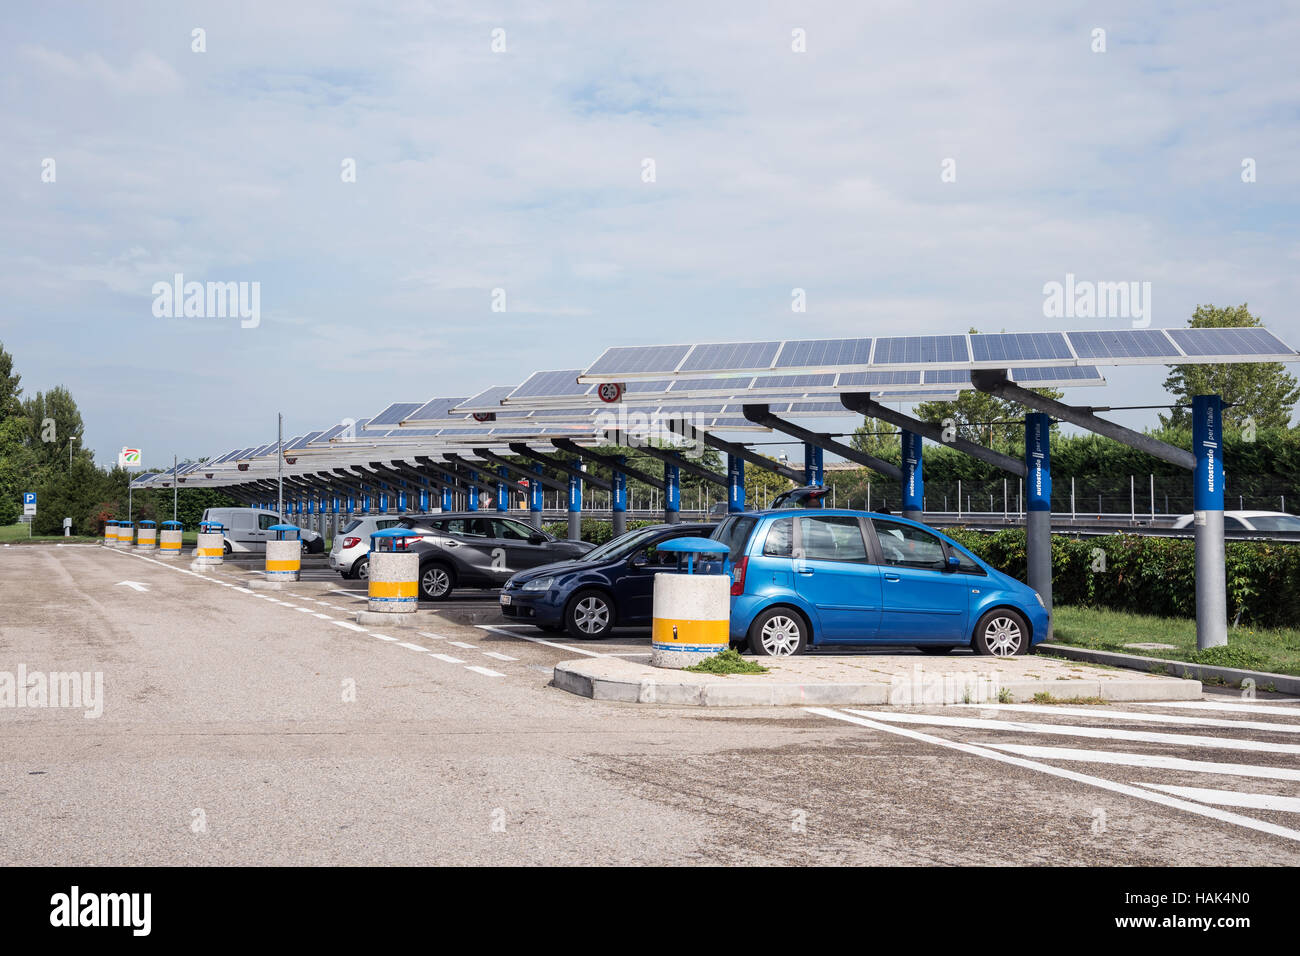 Several  electric  vehicles at  charging station,  Italy, Europe Stock Photo